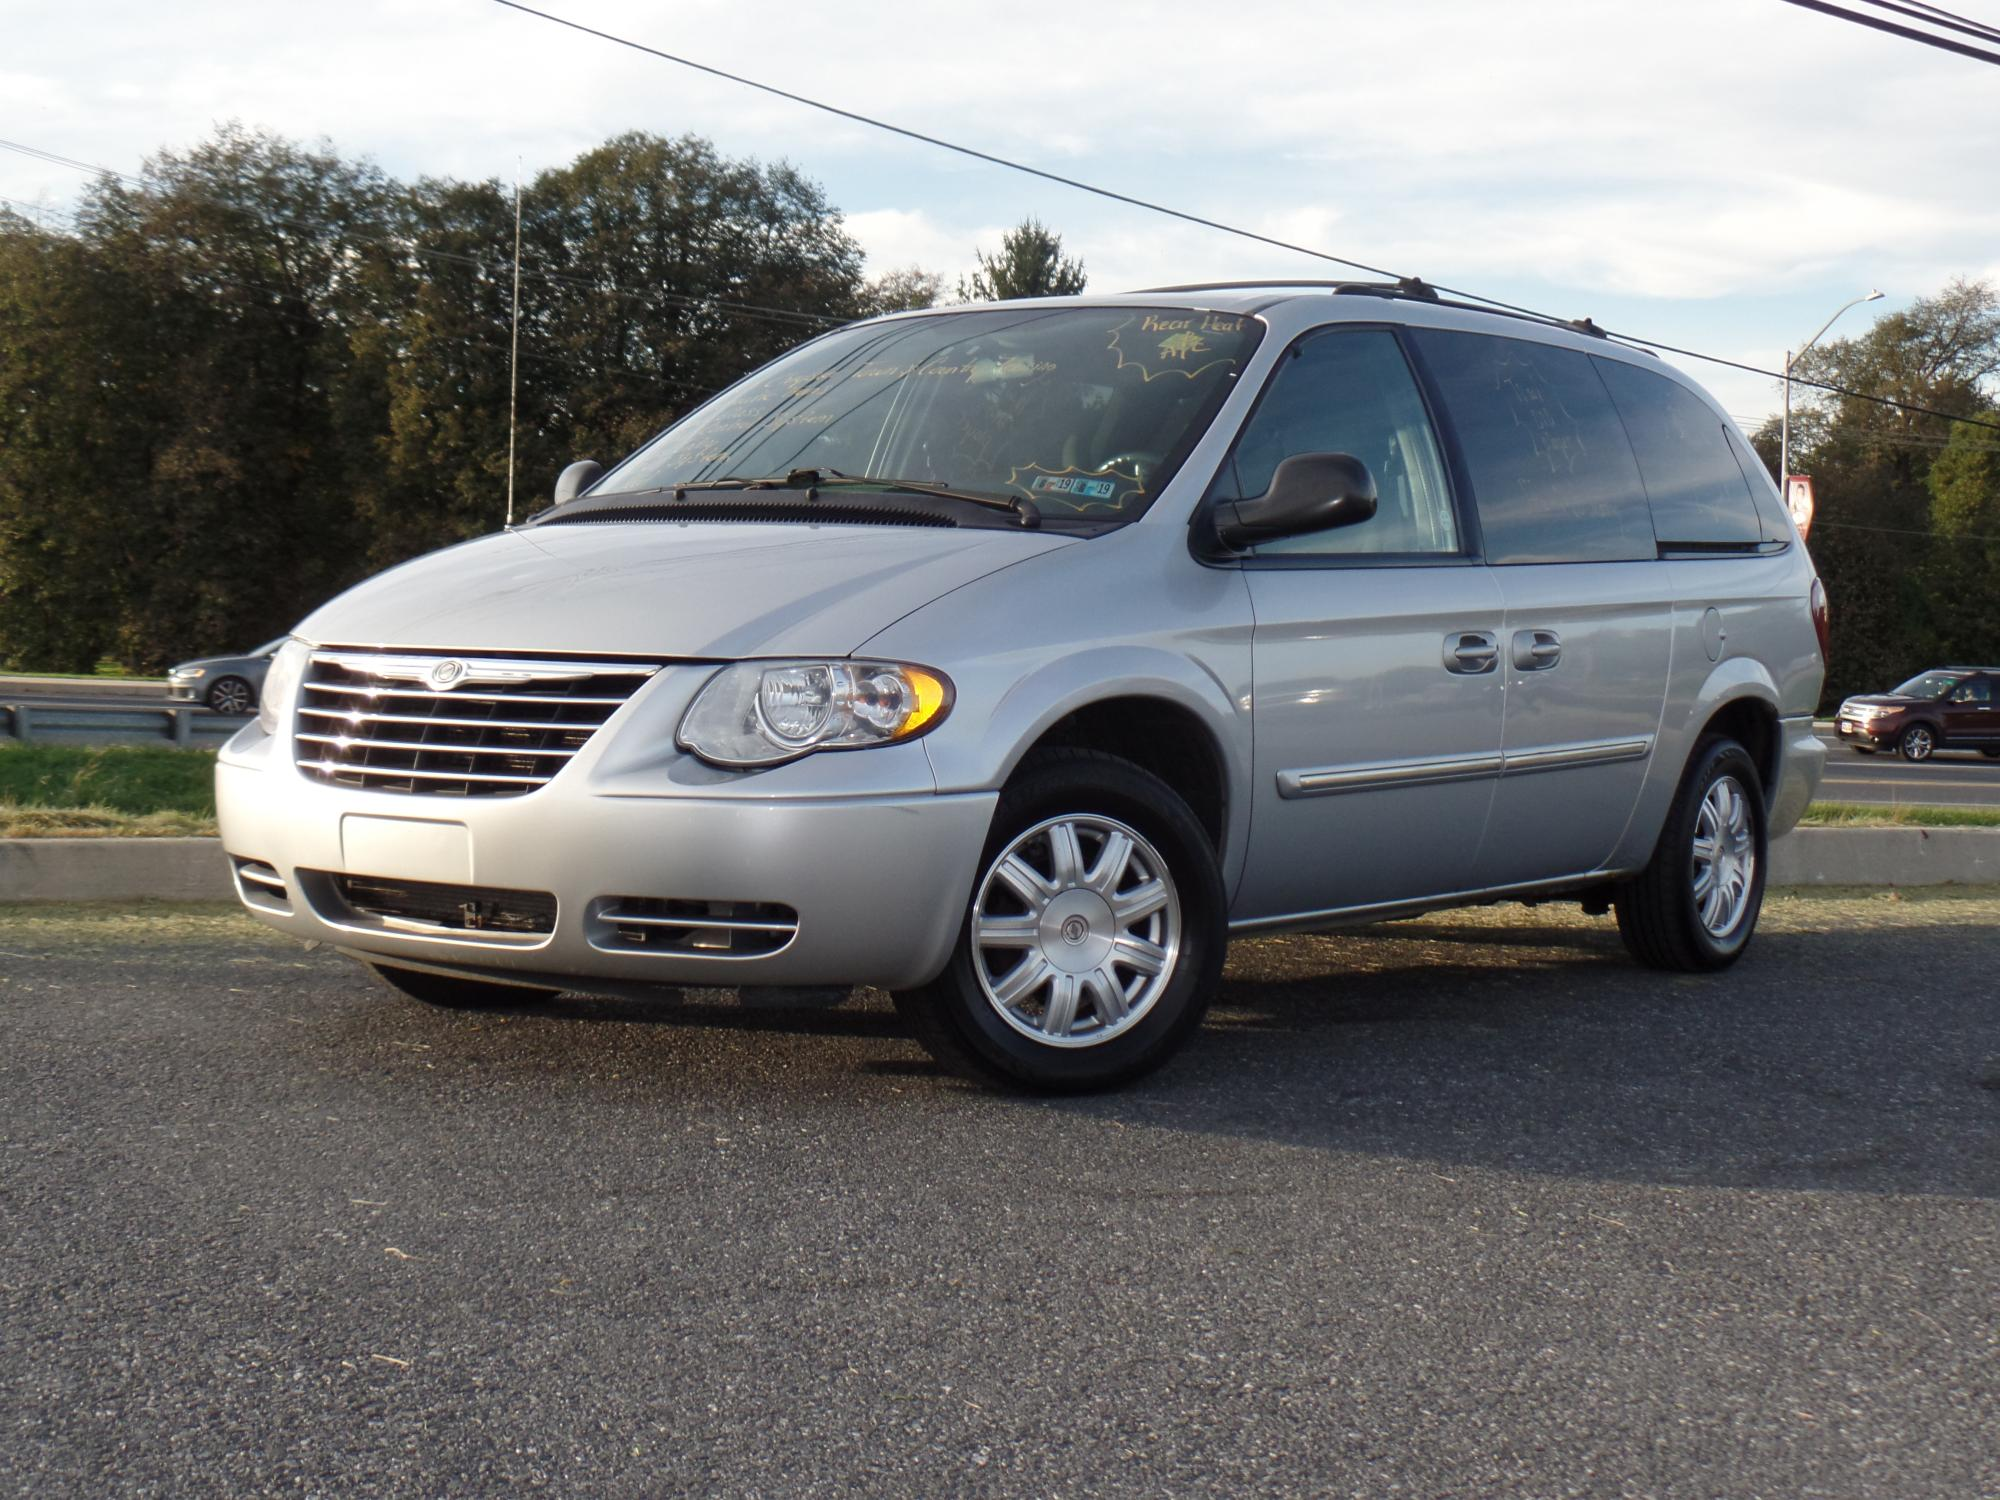 10-16-2018_2005_Chrysler_Town_and_Country_173394__1_.JPG